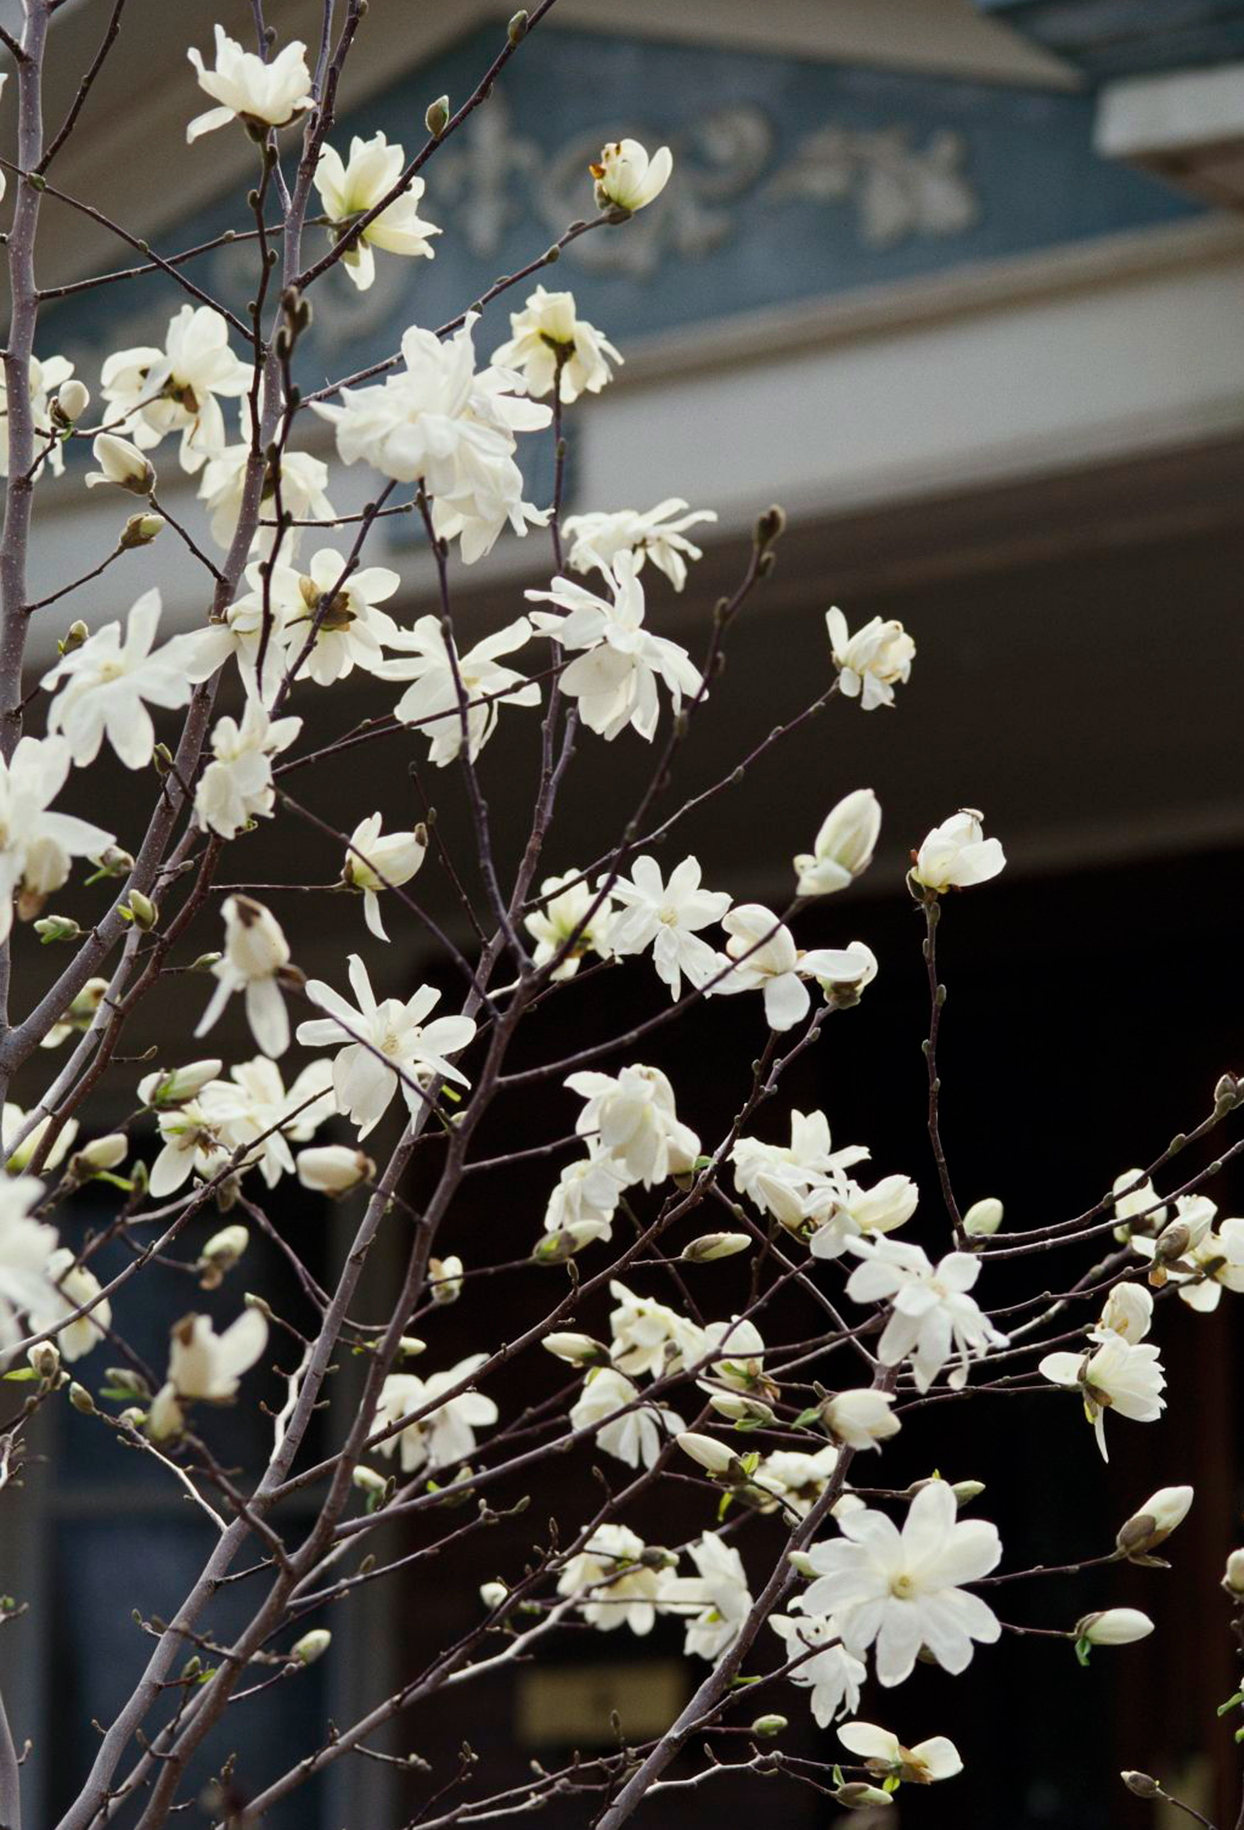 star magnolia tree growing in front of house